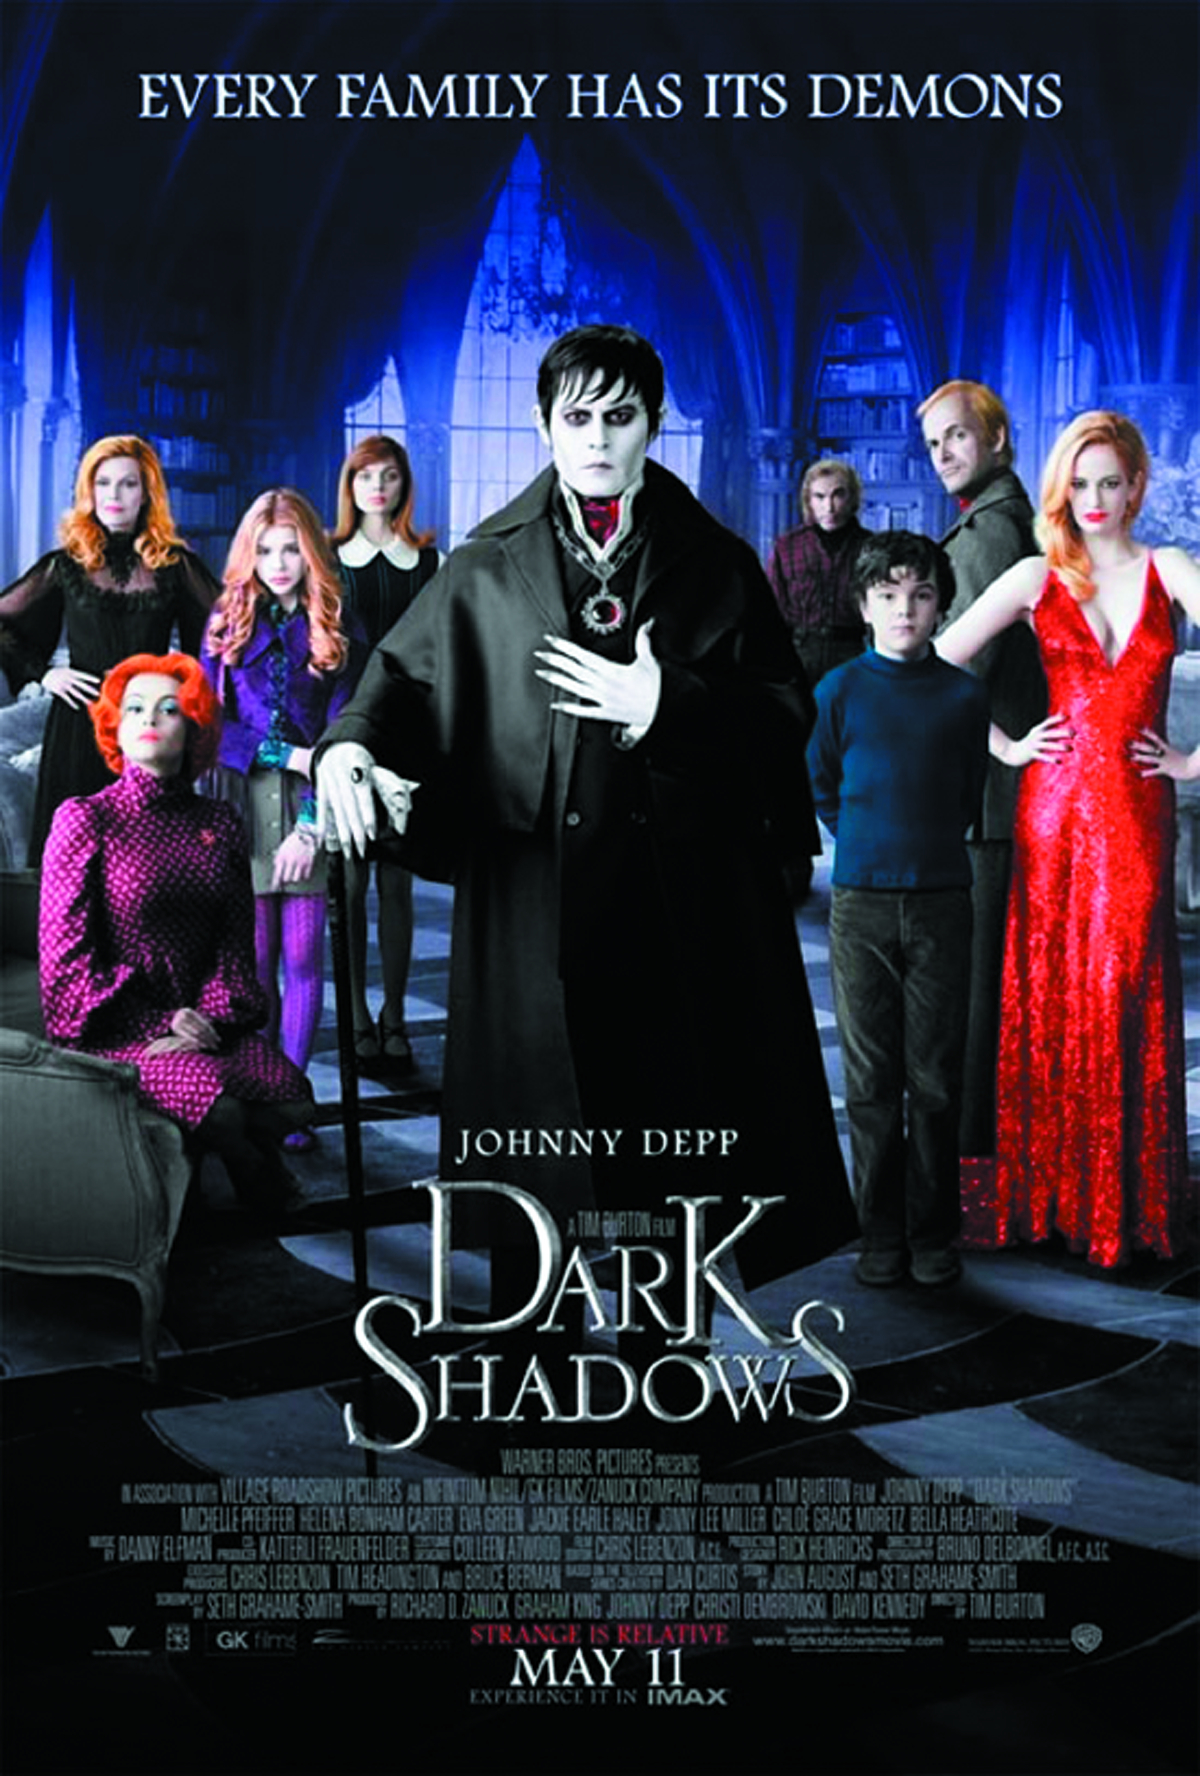 DARK SHADOWS 2012 BD + DVD